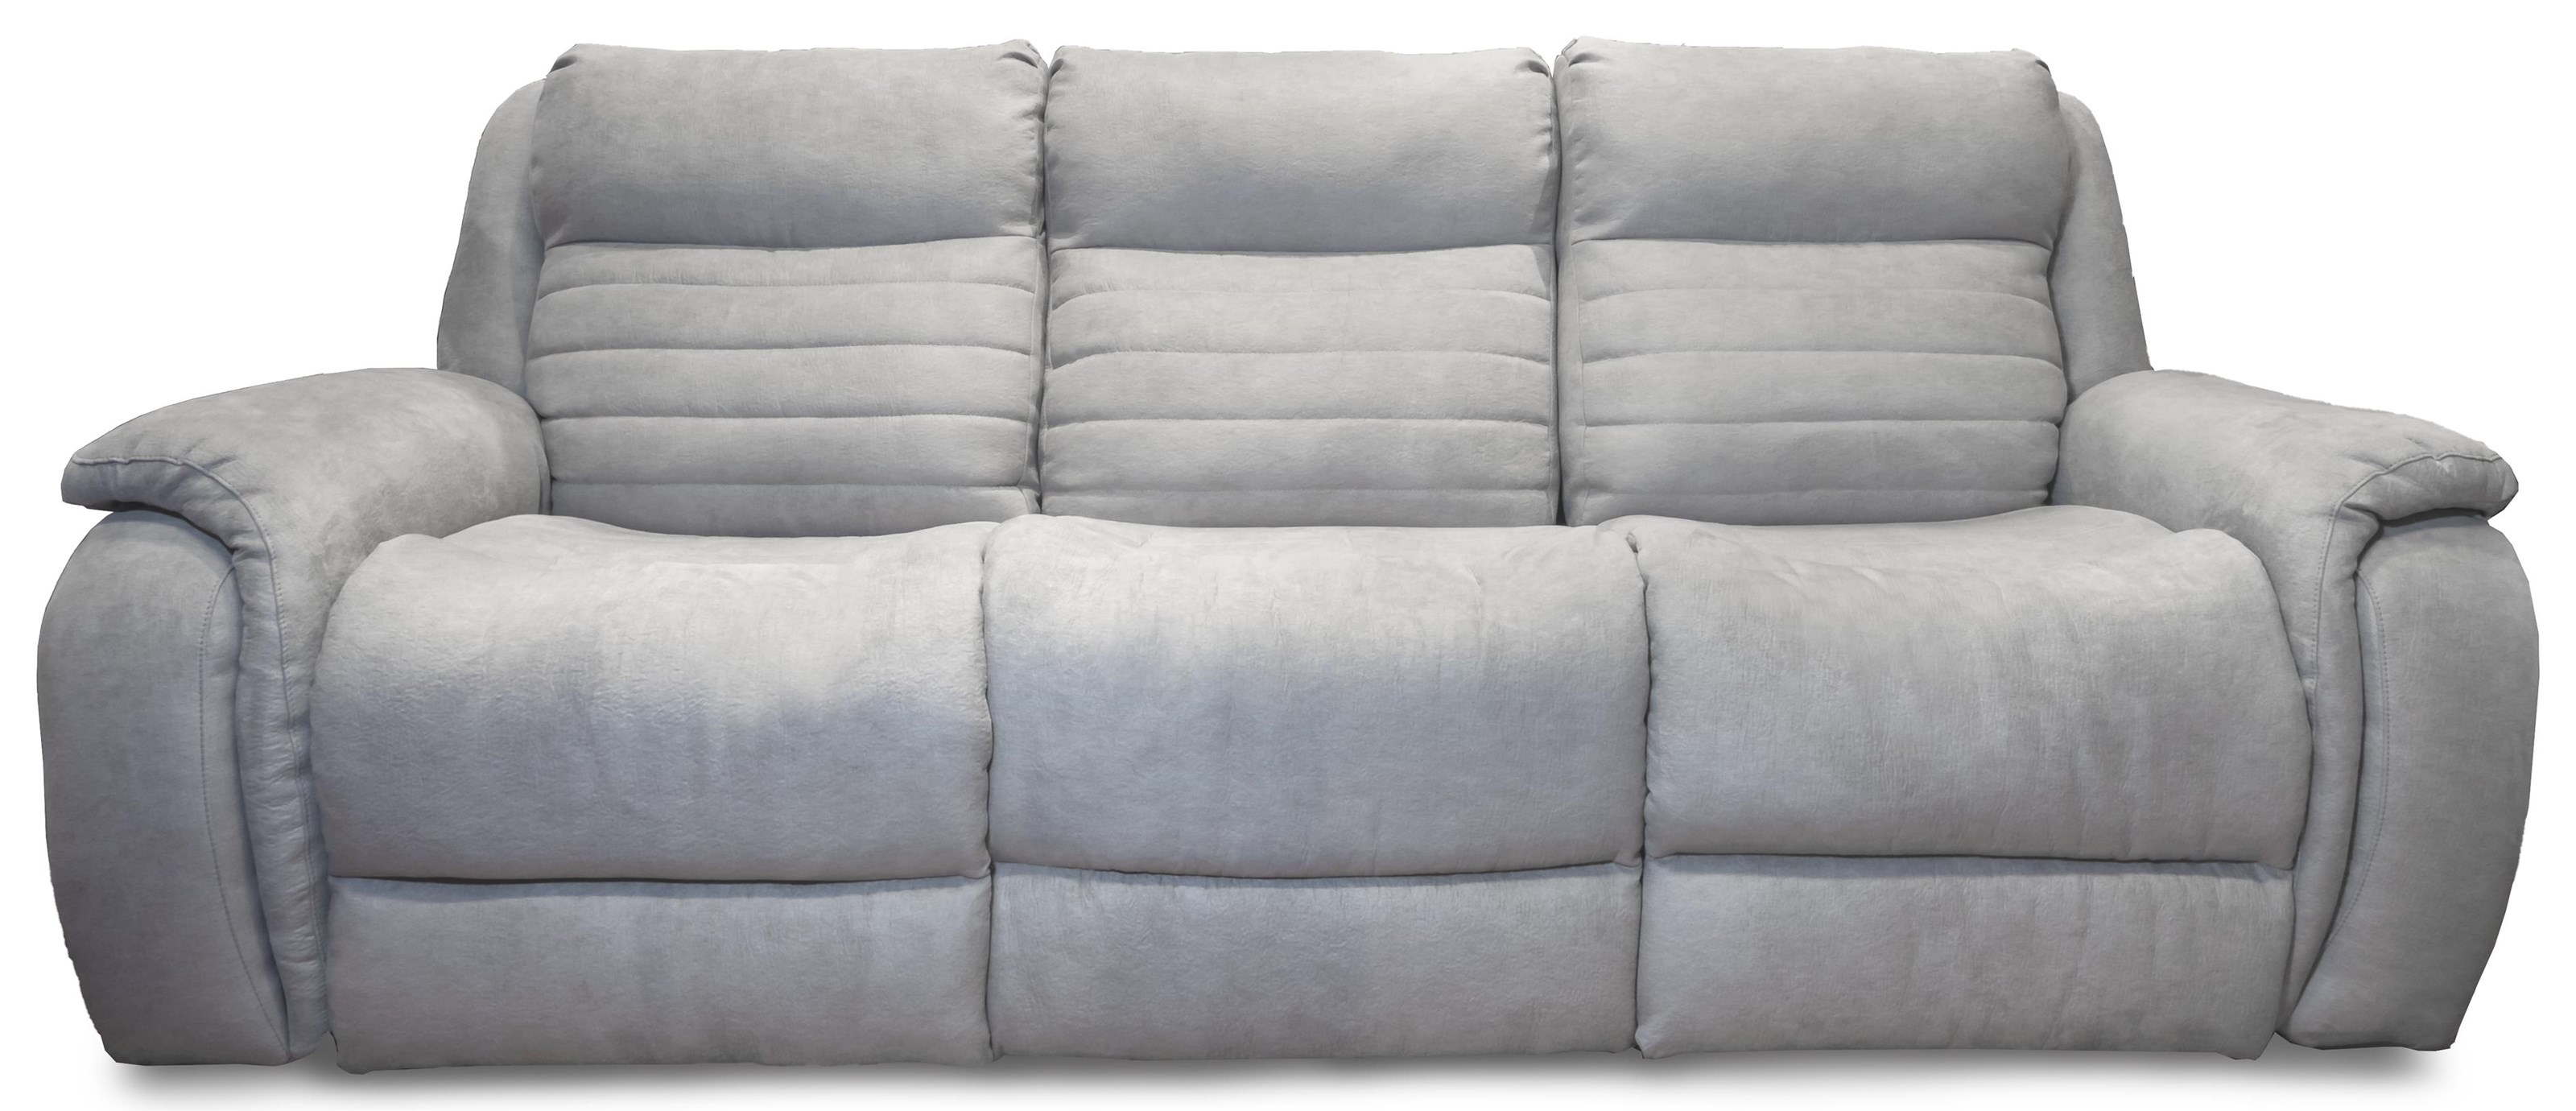 Kipling Power Headrest Sofa by Design to Recline at Rotmans